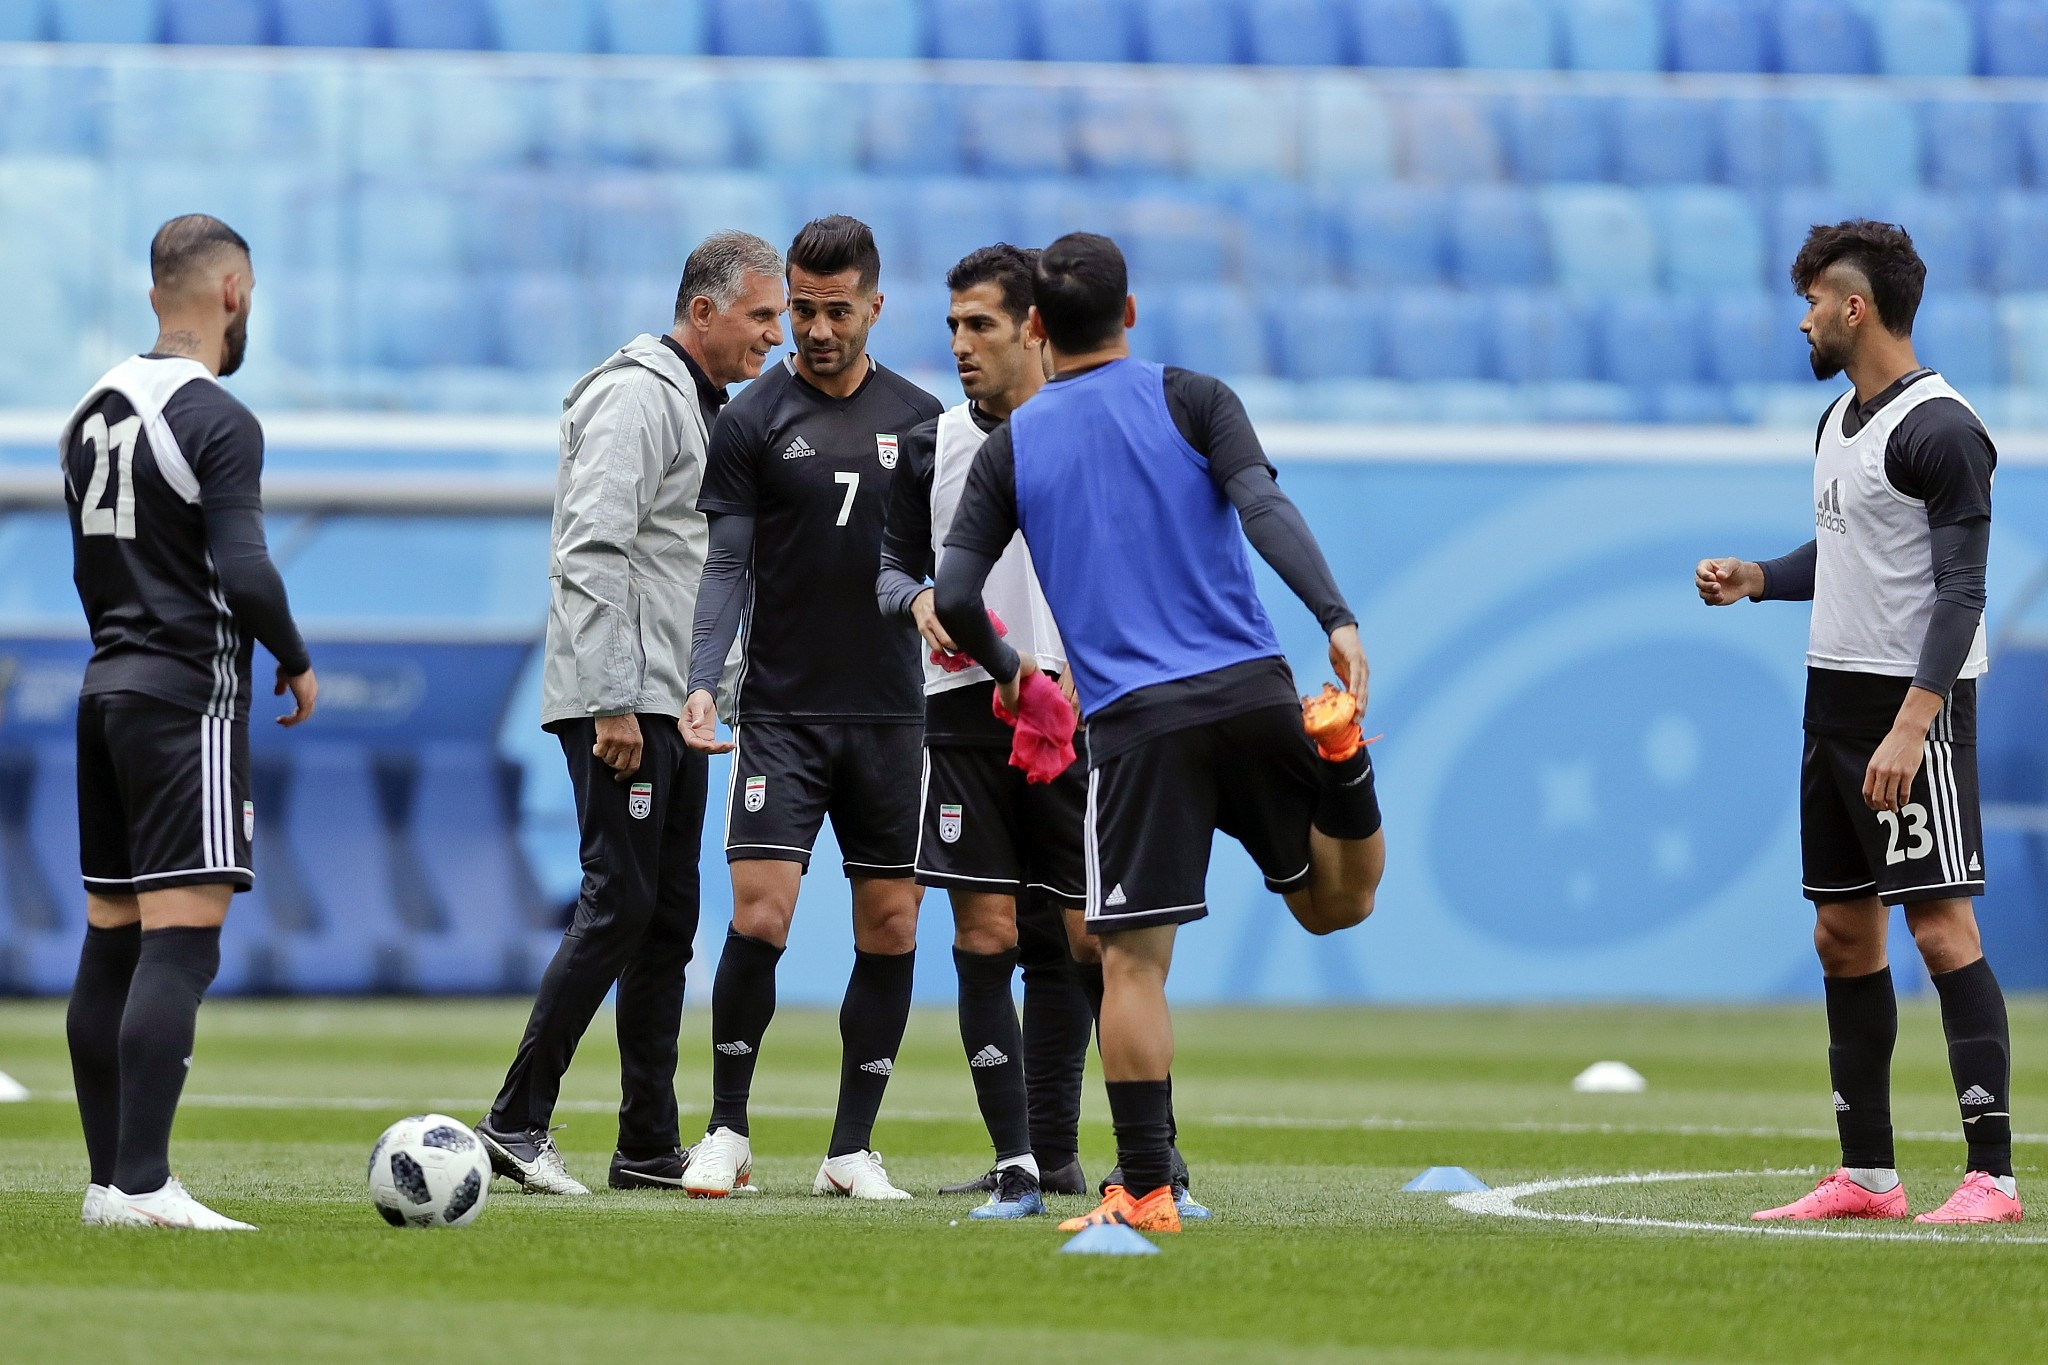 Iran head coach Carlos Queiroz walks among his player during the official training of Iran on the eve of the group B match between Morocco and Iran at the 2018 soccer World Cup in the St. Petersburg Stadium in St. Petersburg Russia Thursday